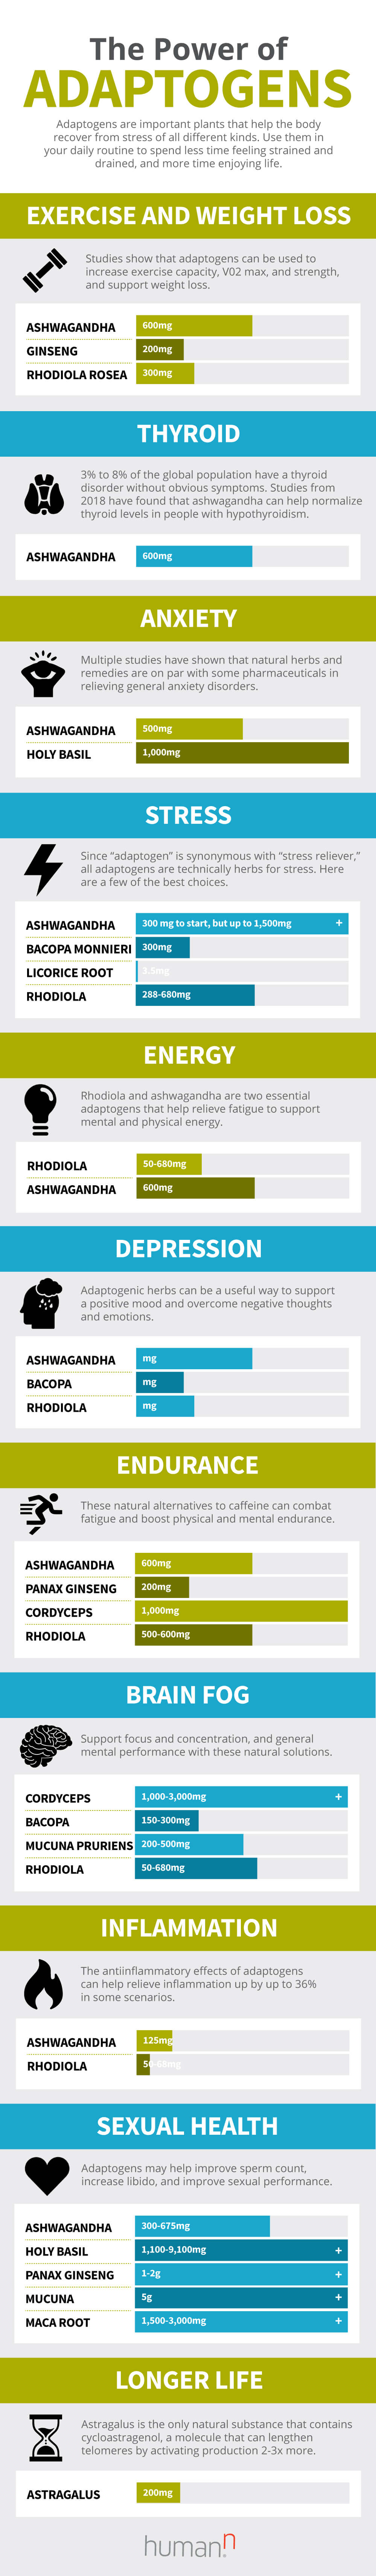 Adaptogens Infographic